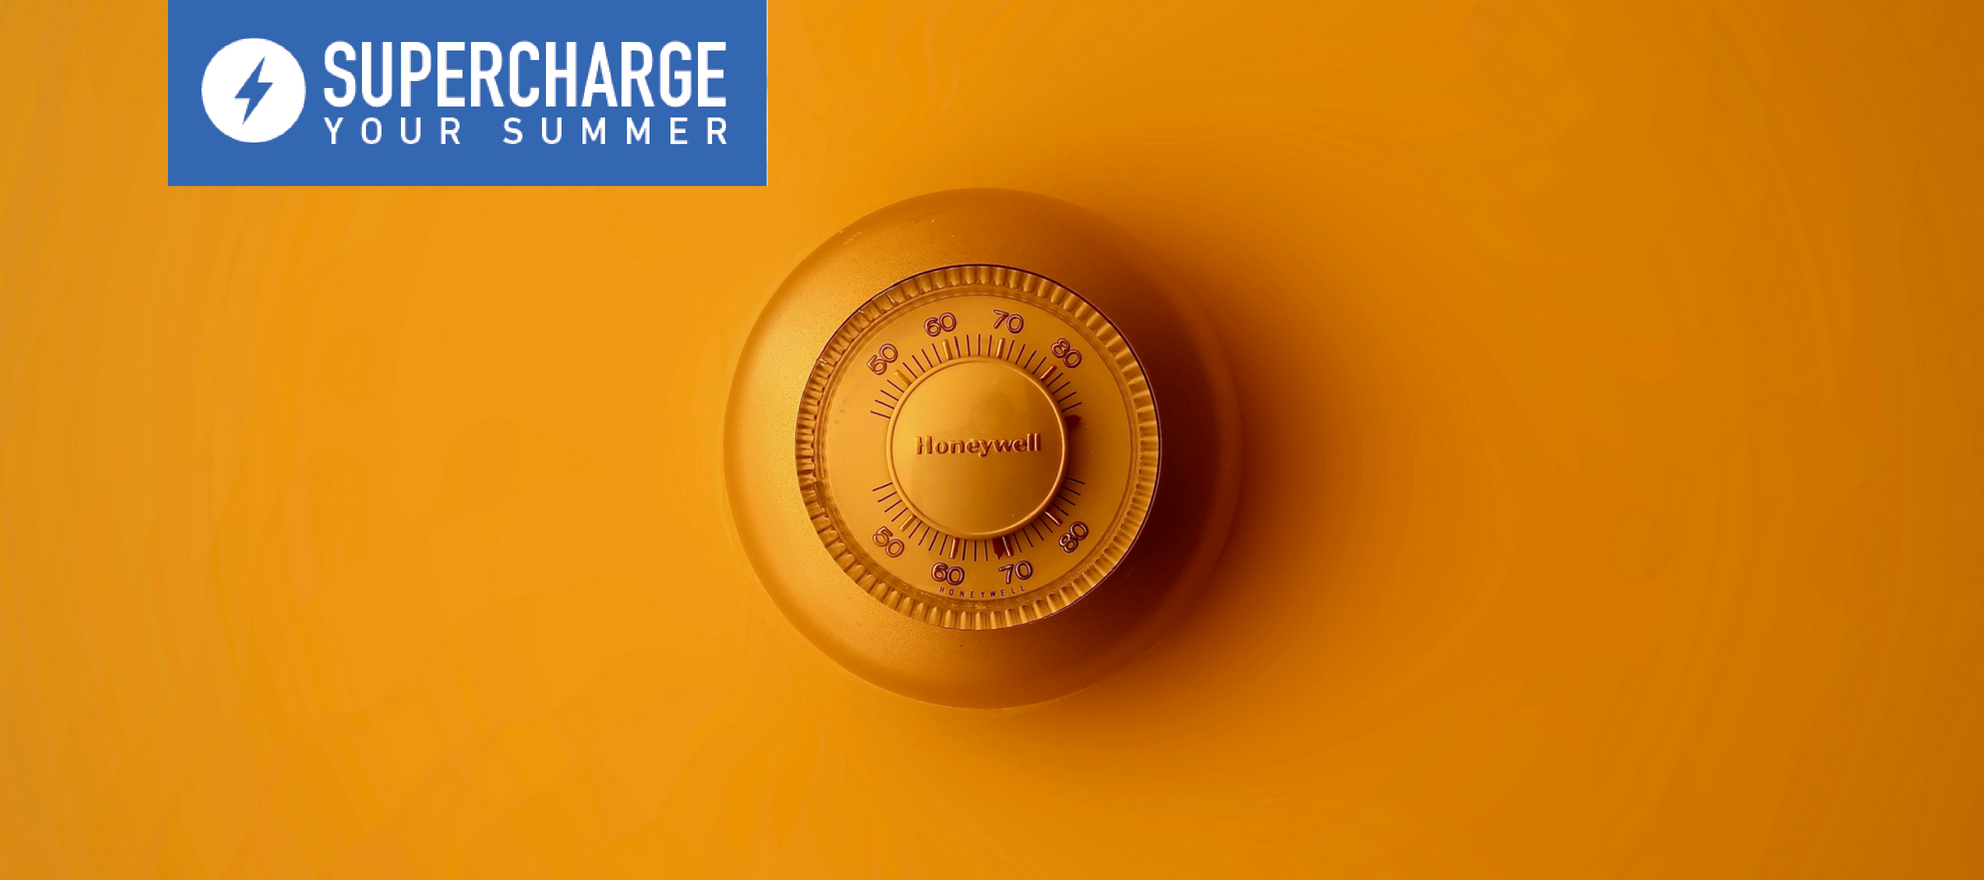 Cool down your summer with a new take on energy efficiency